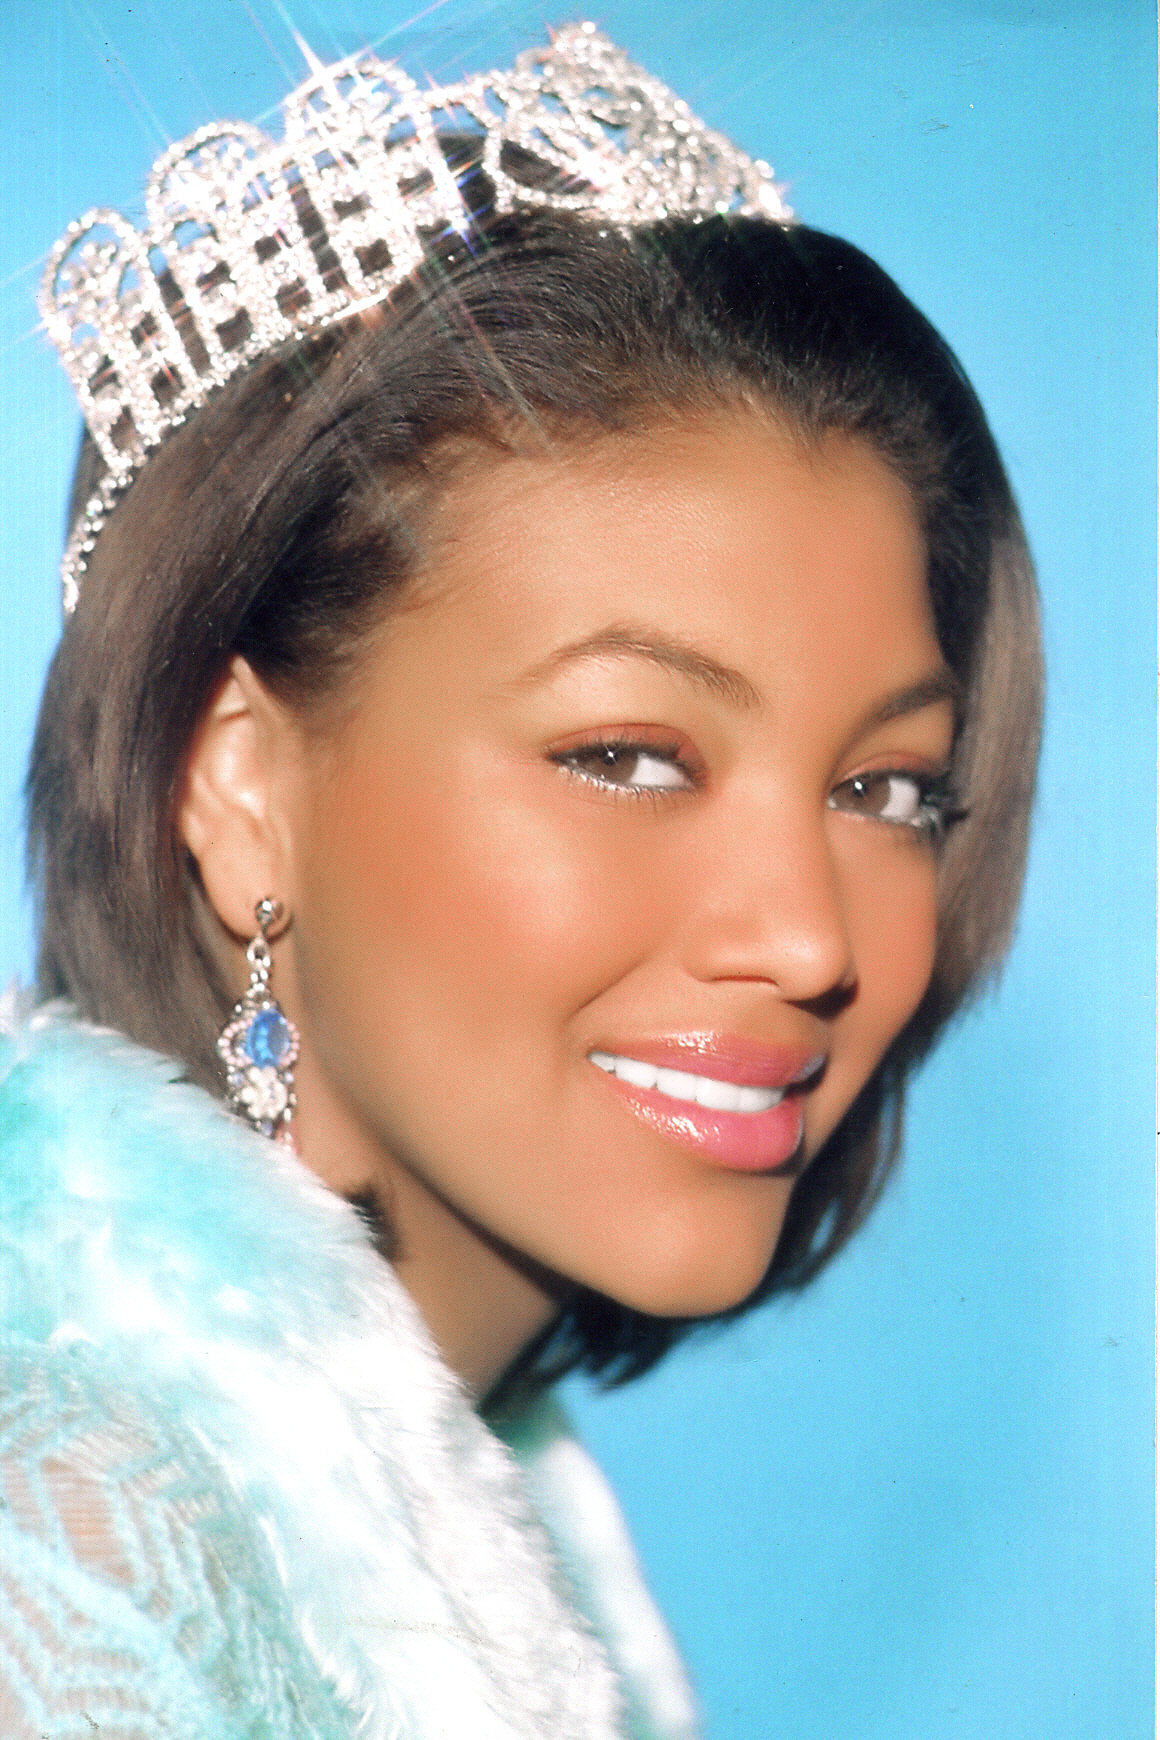 BRITTANY SMITH- MISS SC TEEN USA is wearing small silver drops with ab and clear stones.